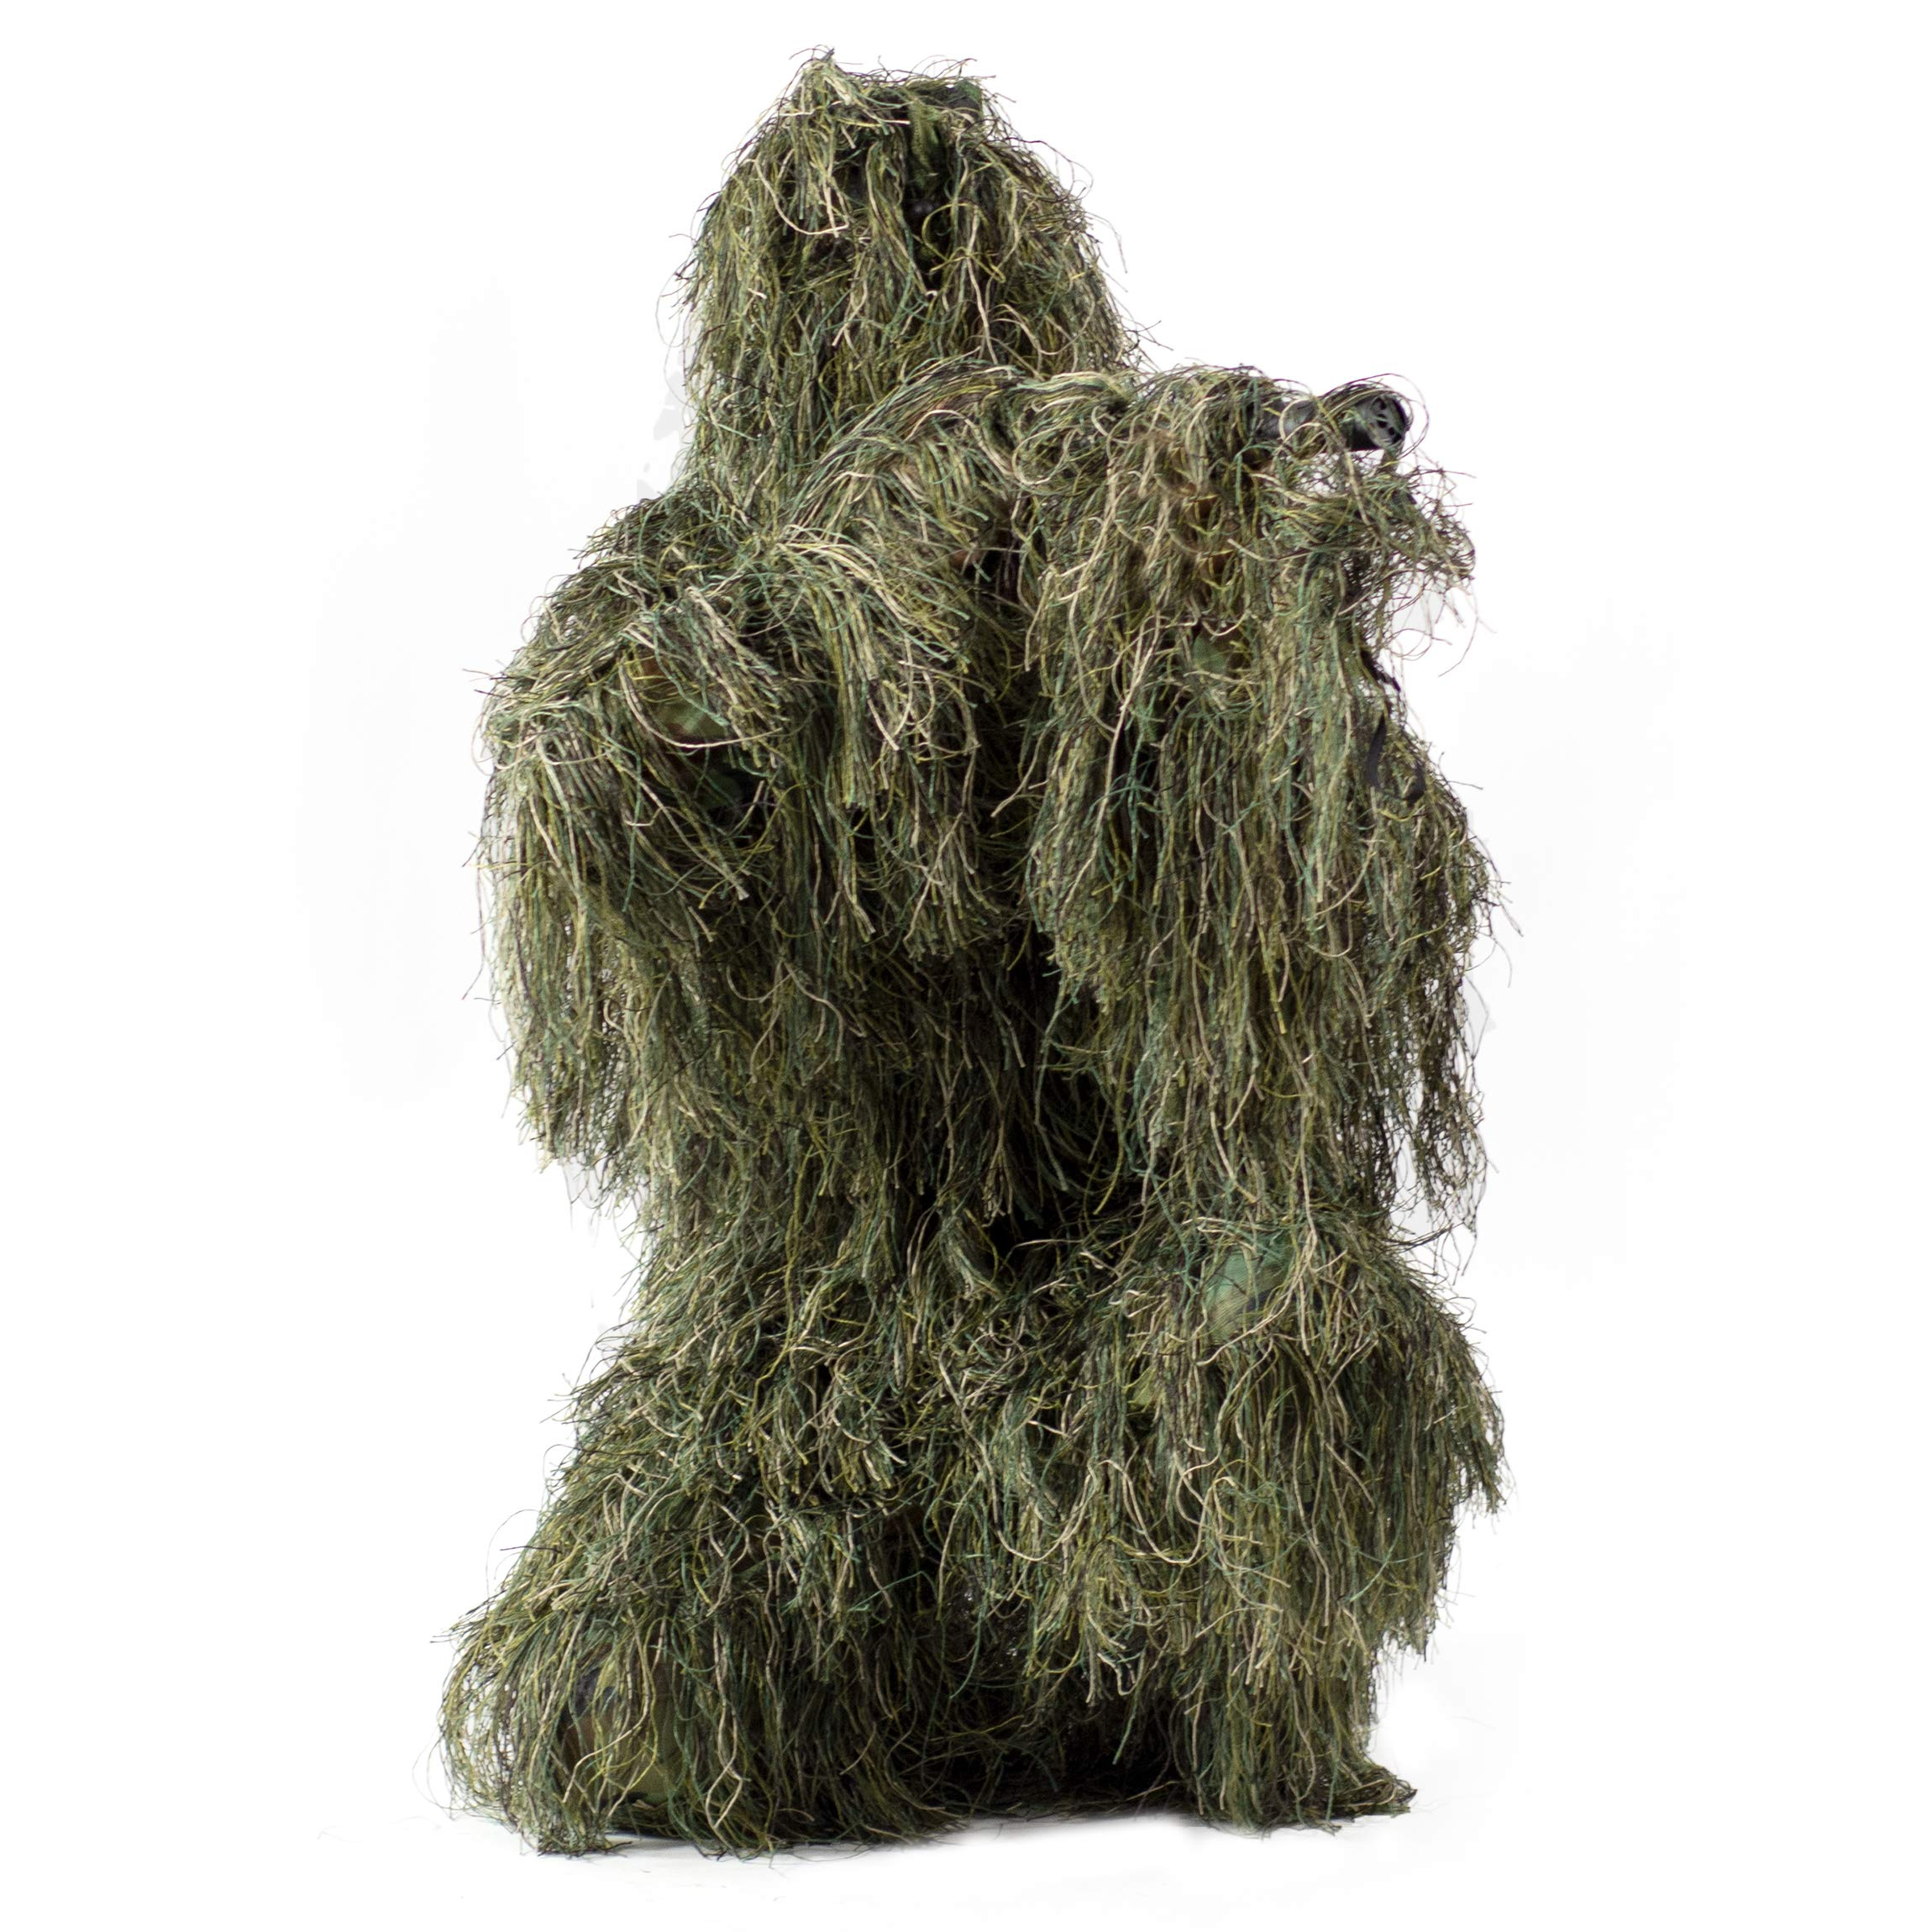 VIVO Ghillie Suit Camo Woodland Camo (OUTD-V001XL) by VIVO